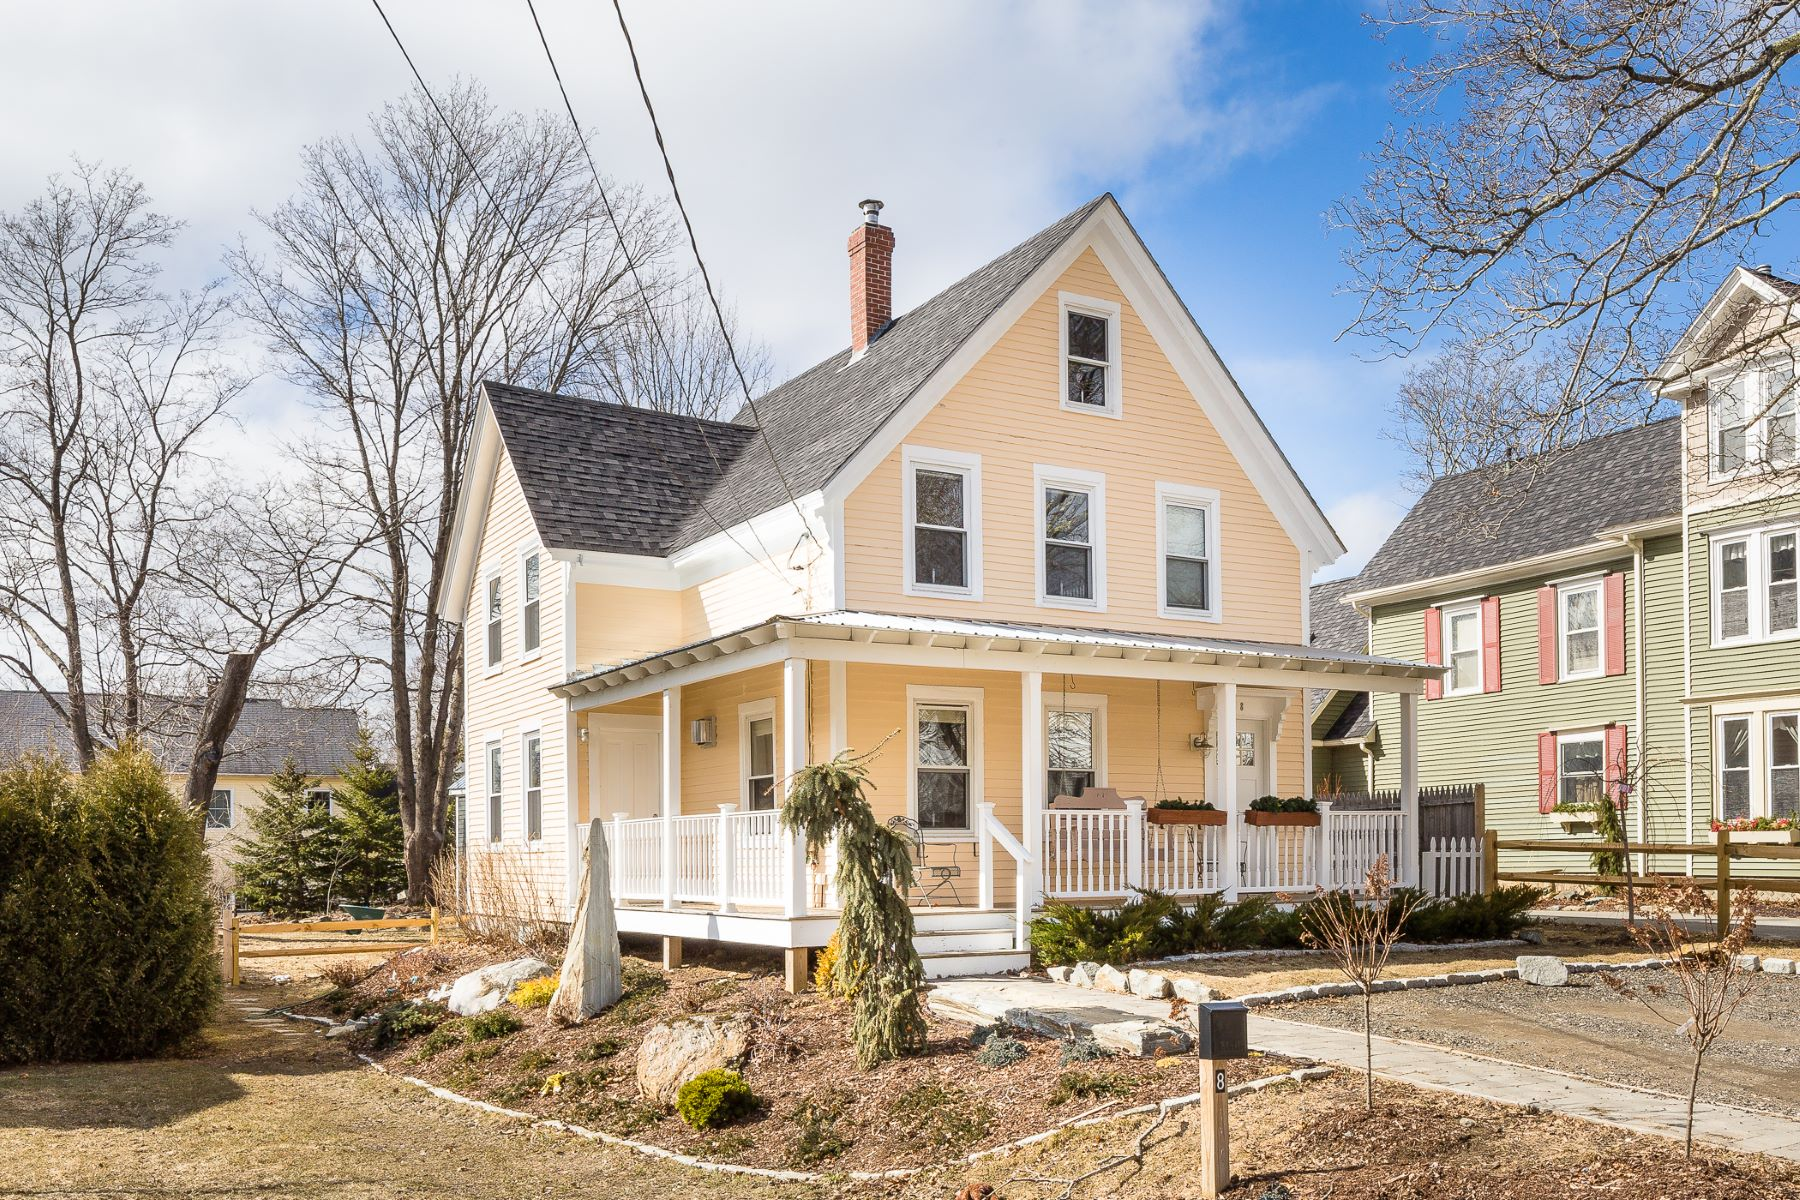 Single Family Home for Sale at 8 Central Street 8 Central Street Camden, Maine 04843 United States